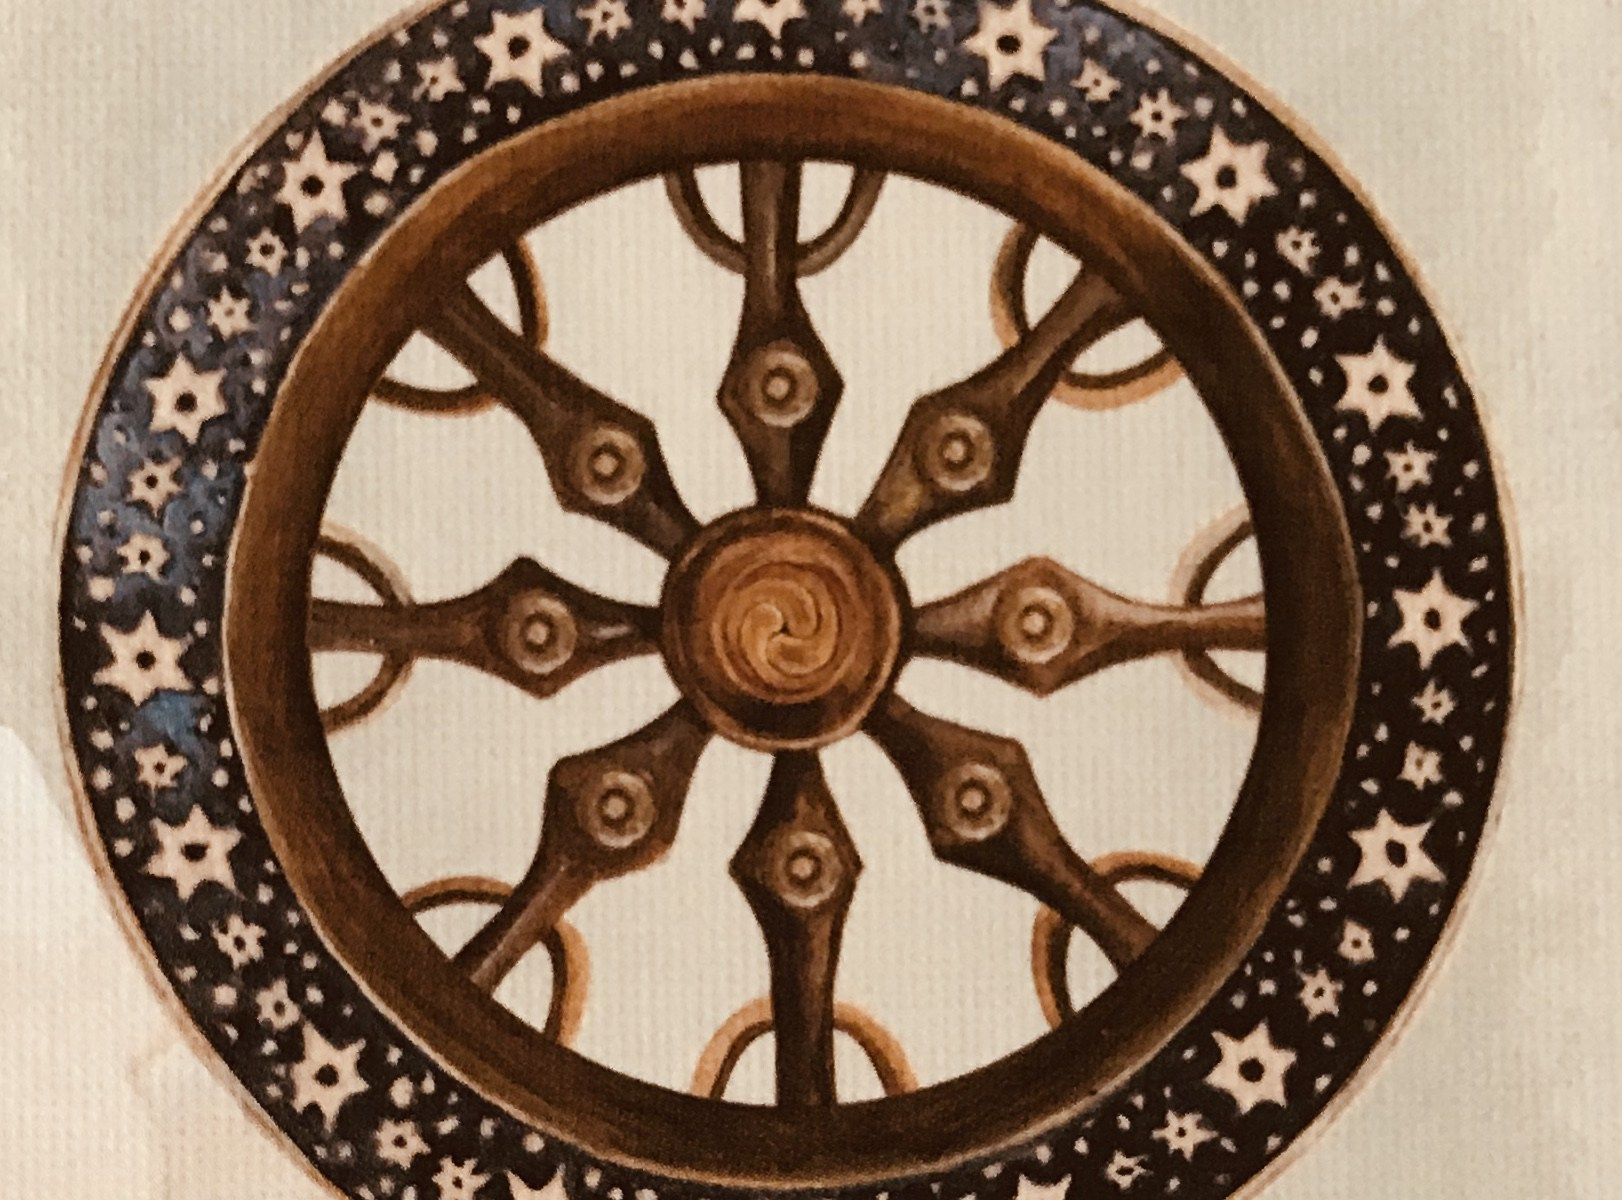 Wheel-of-Fortune-cropped.jpg